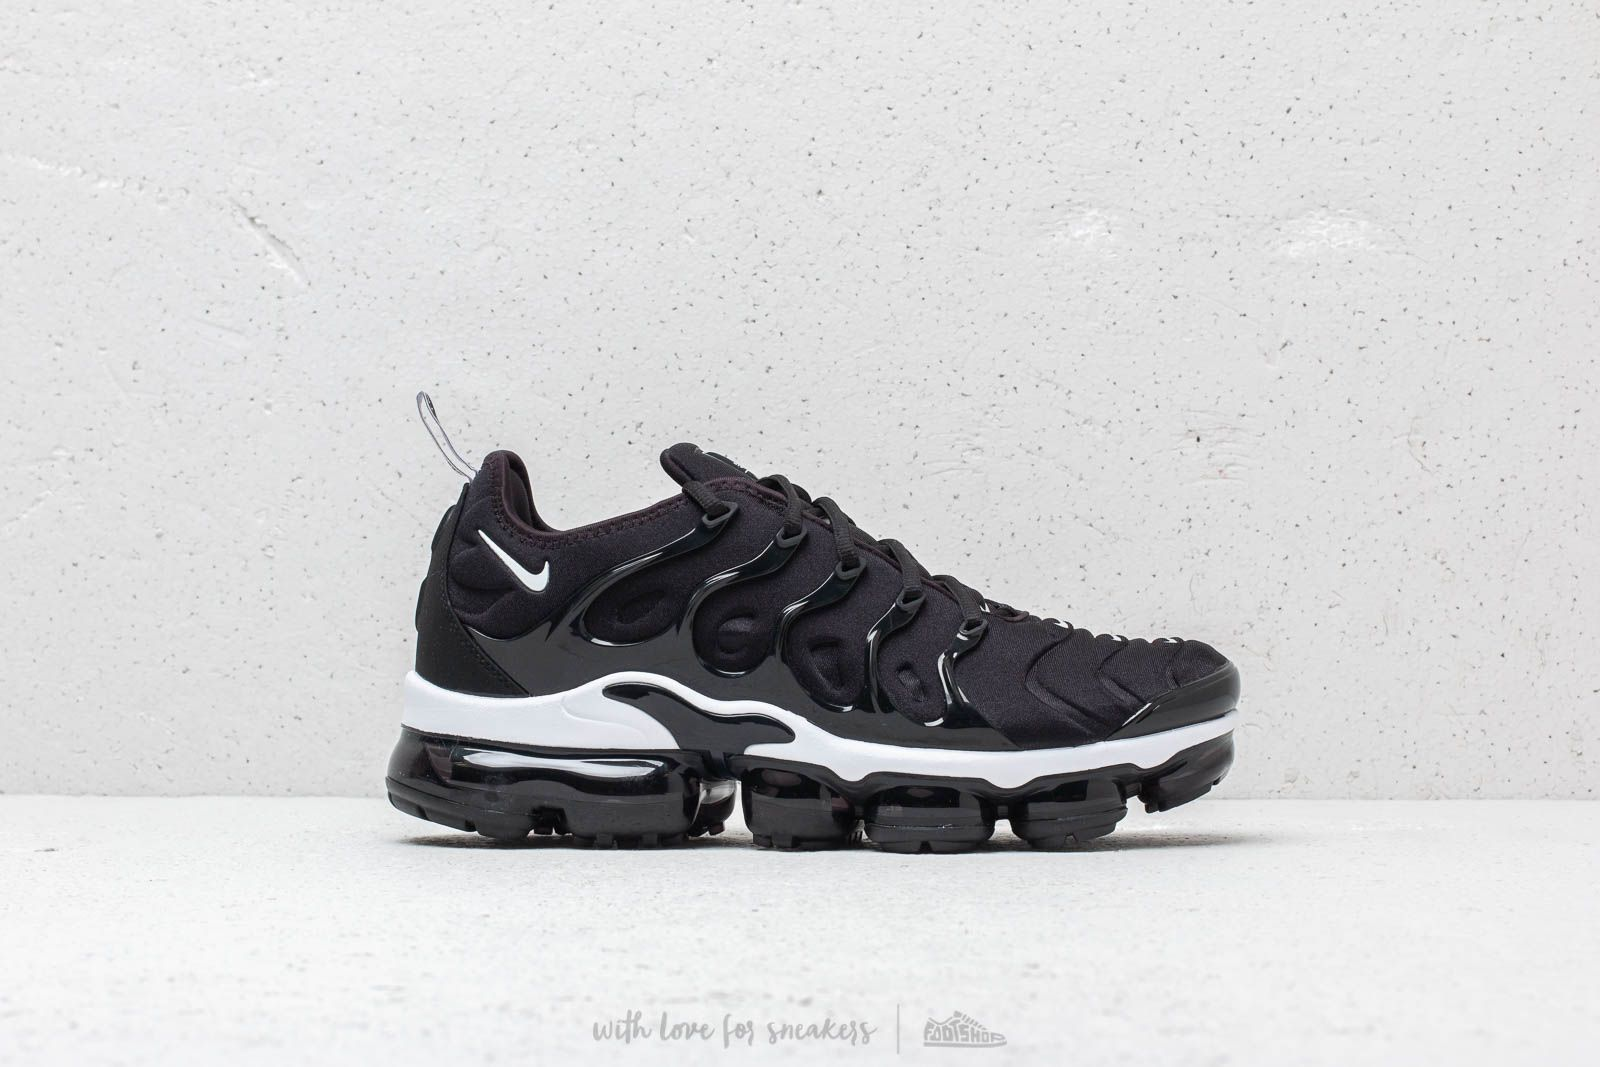 promo code 03004 fcd02 Nike Air Vapormax Plus Black White at a great price 209 € buy at Footshop